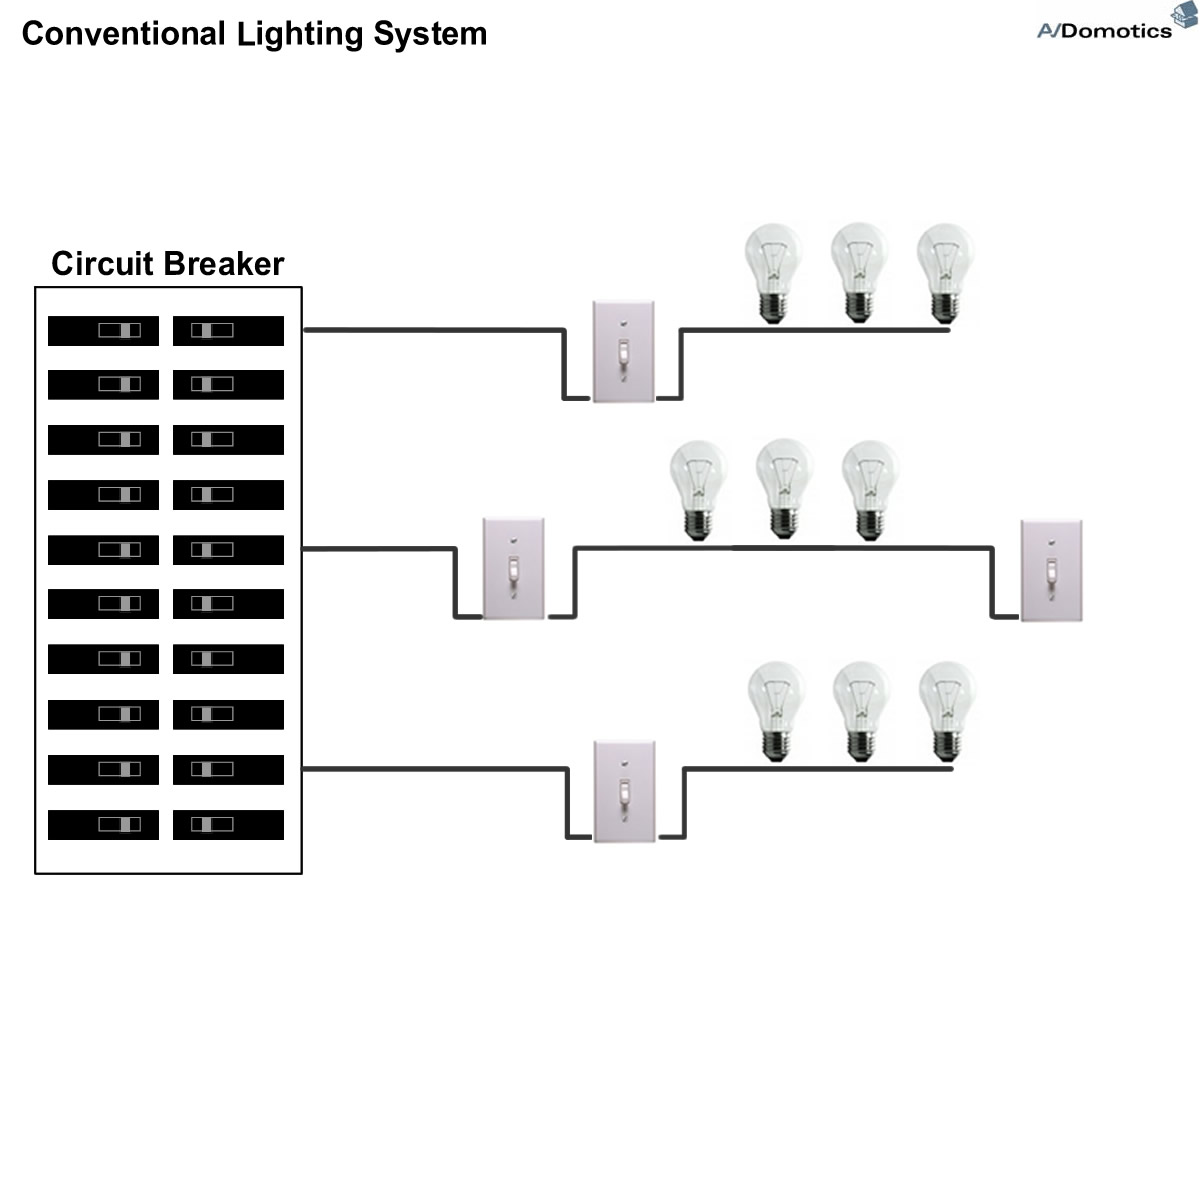 Lighting Control Panels Diagram Reinvent Your Wiring Panel Schematic Avdomotics Smart Home Technology Rh Com System Circuit Relay